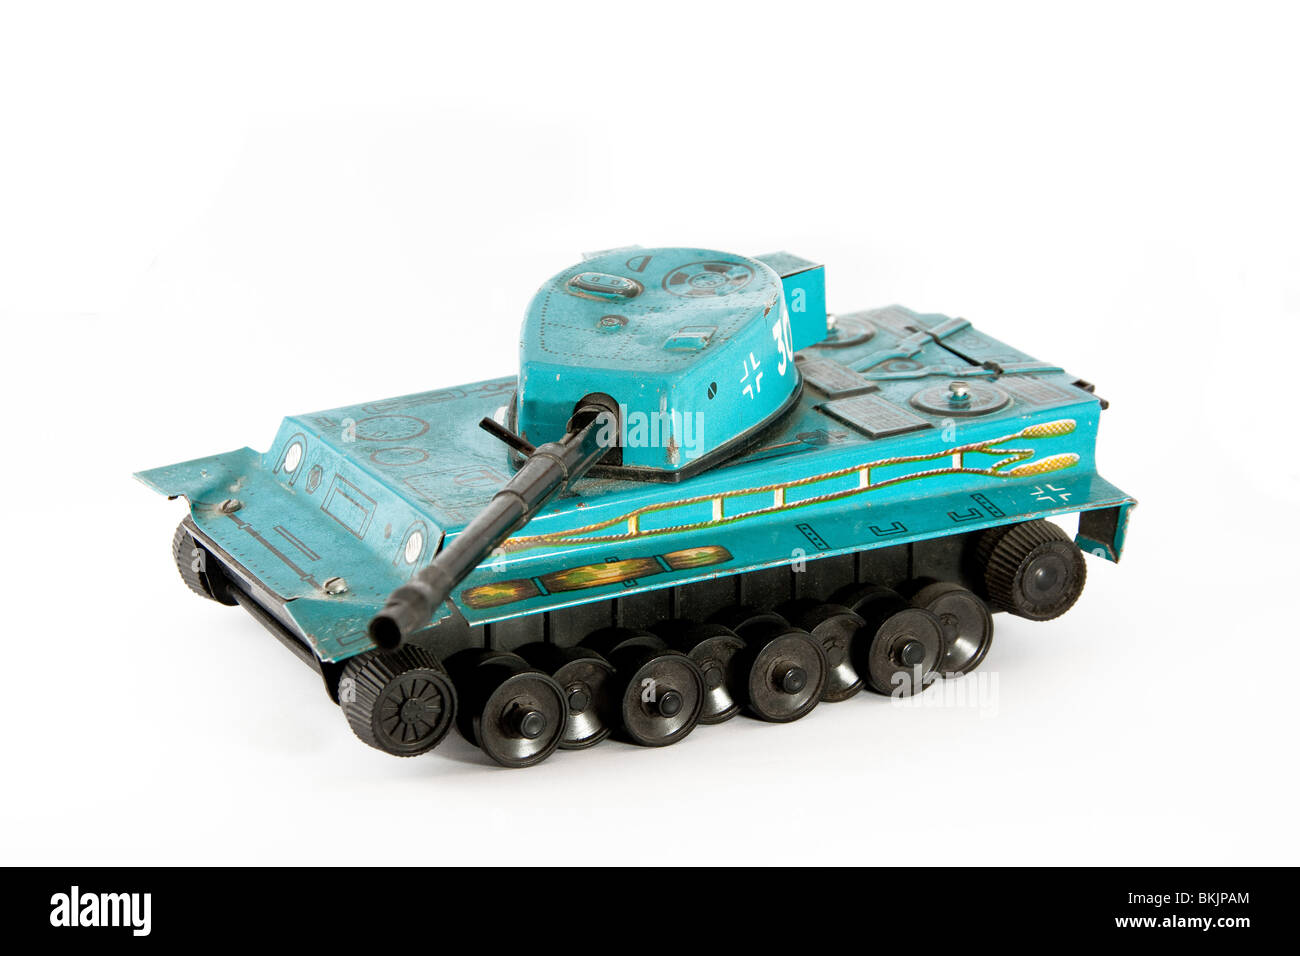 A green old tank toy Stock Photo